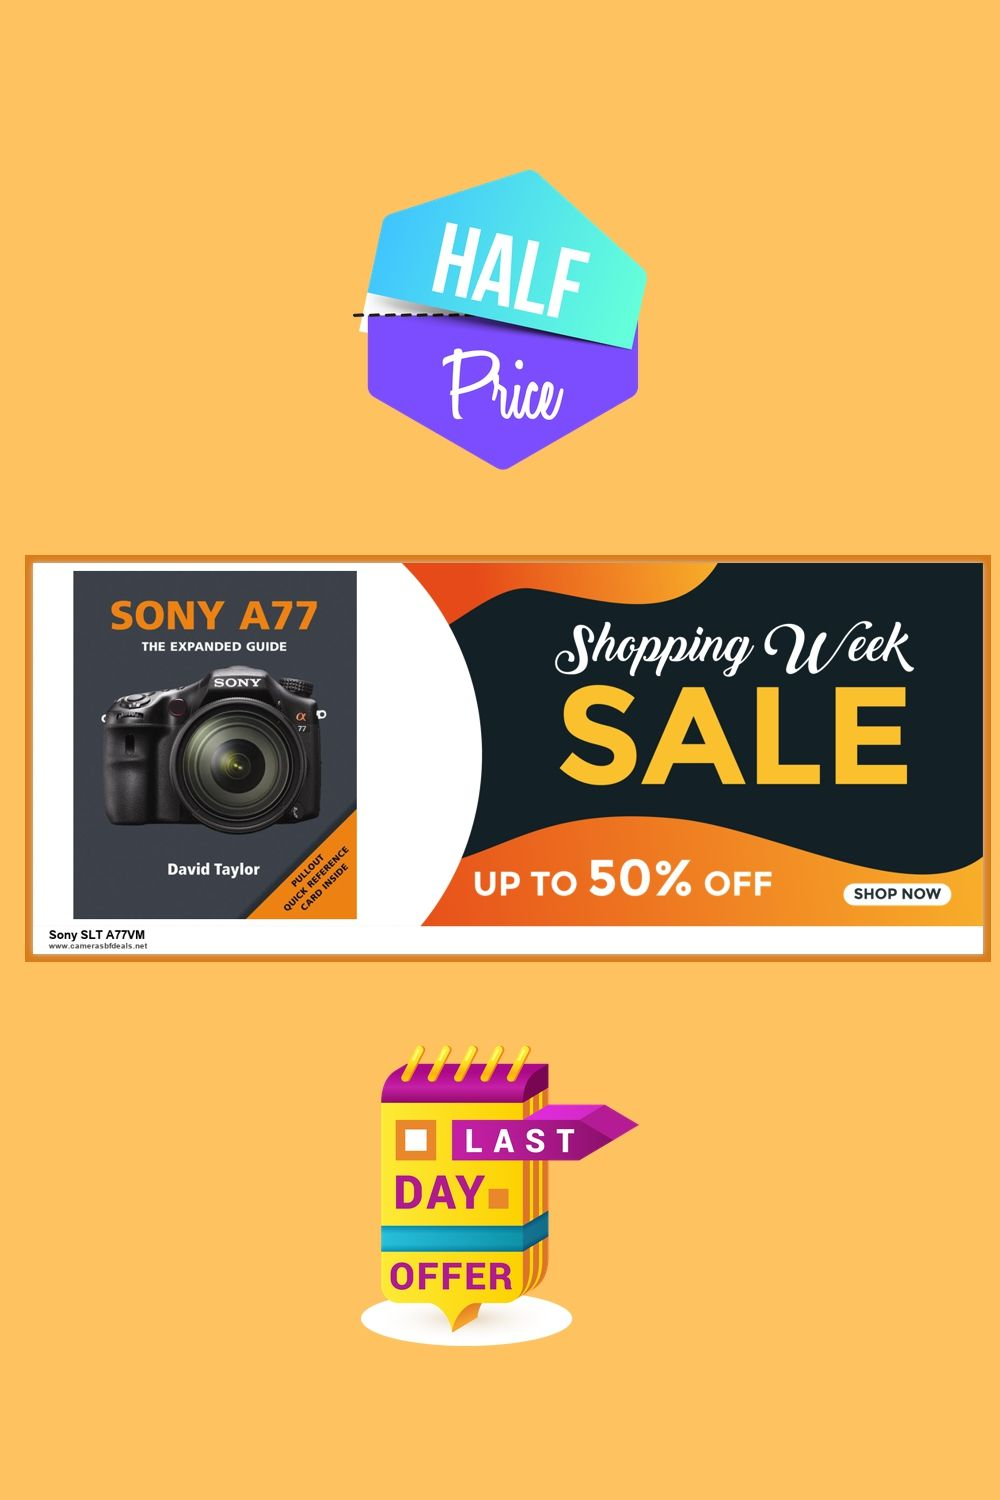 Top 10 Sony Slt A77vm Black Friday Deals Sales 2020 In 2020 Black Friday Sony Cyber Monday Deals